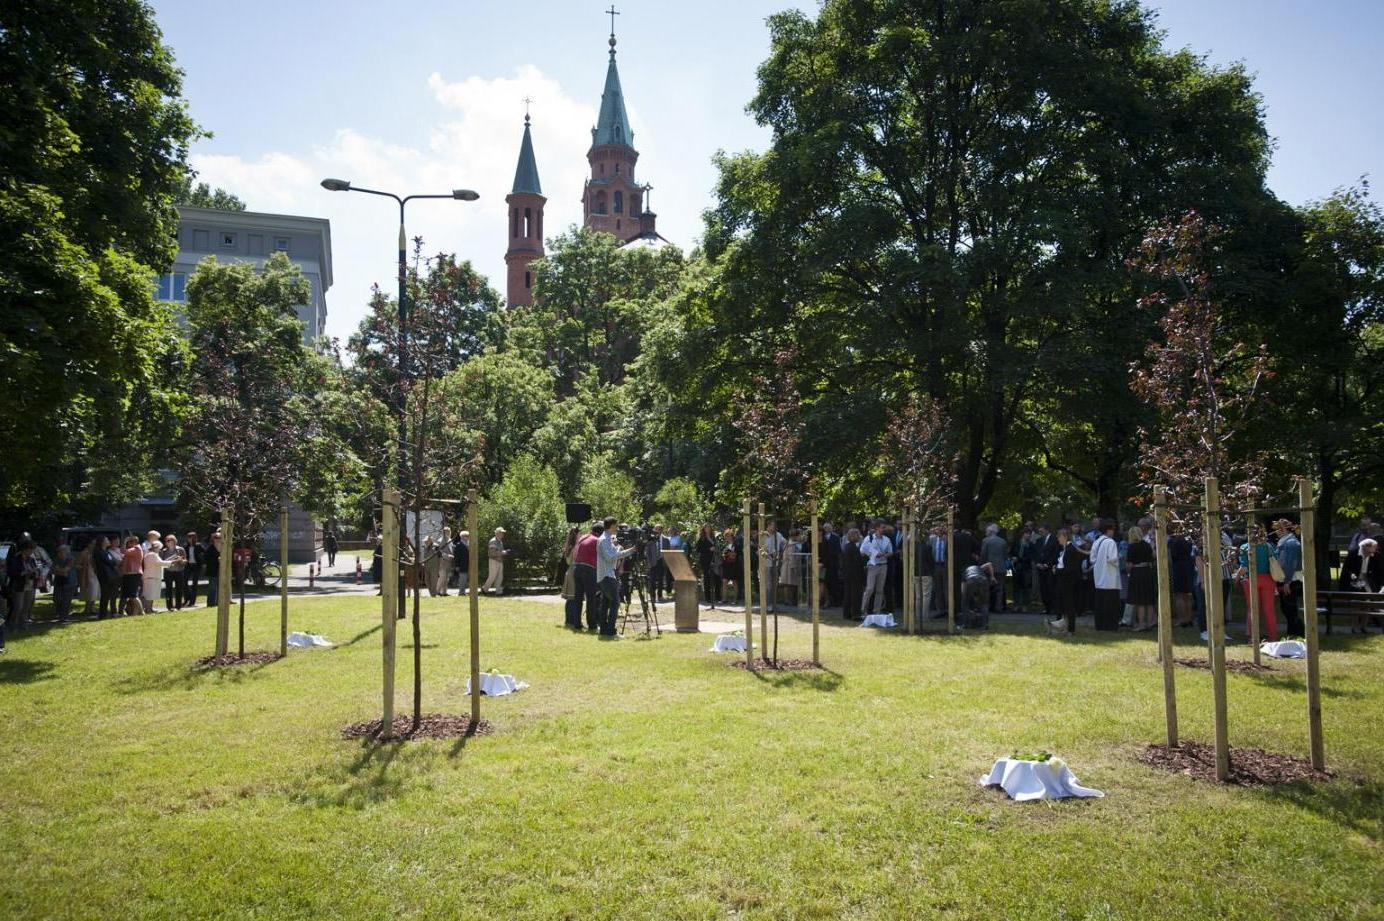 2014 - Birth of the Garden of the Righteous of Warsaw